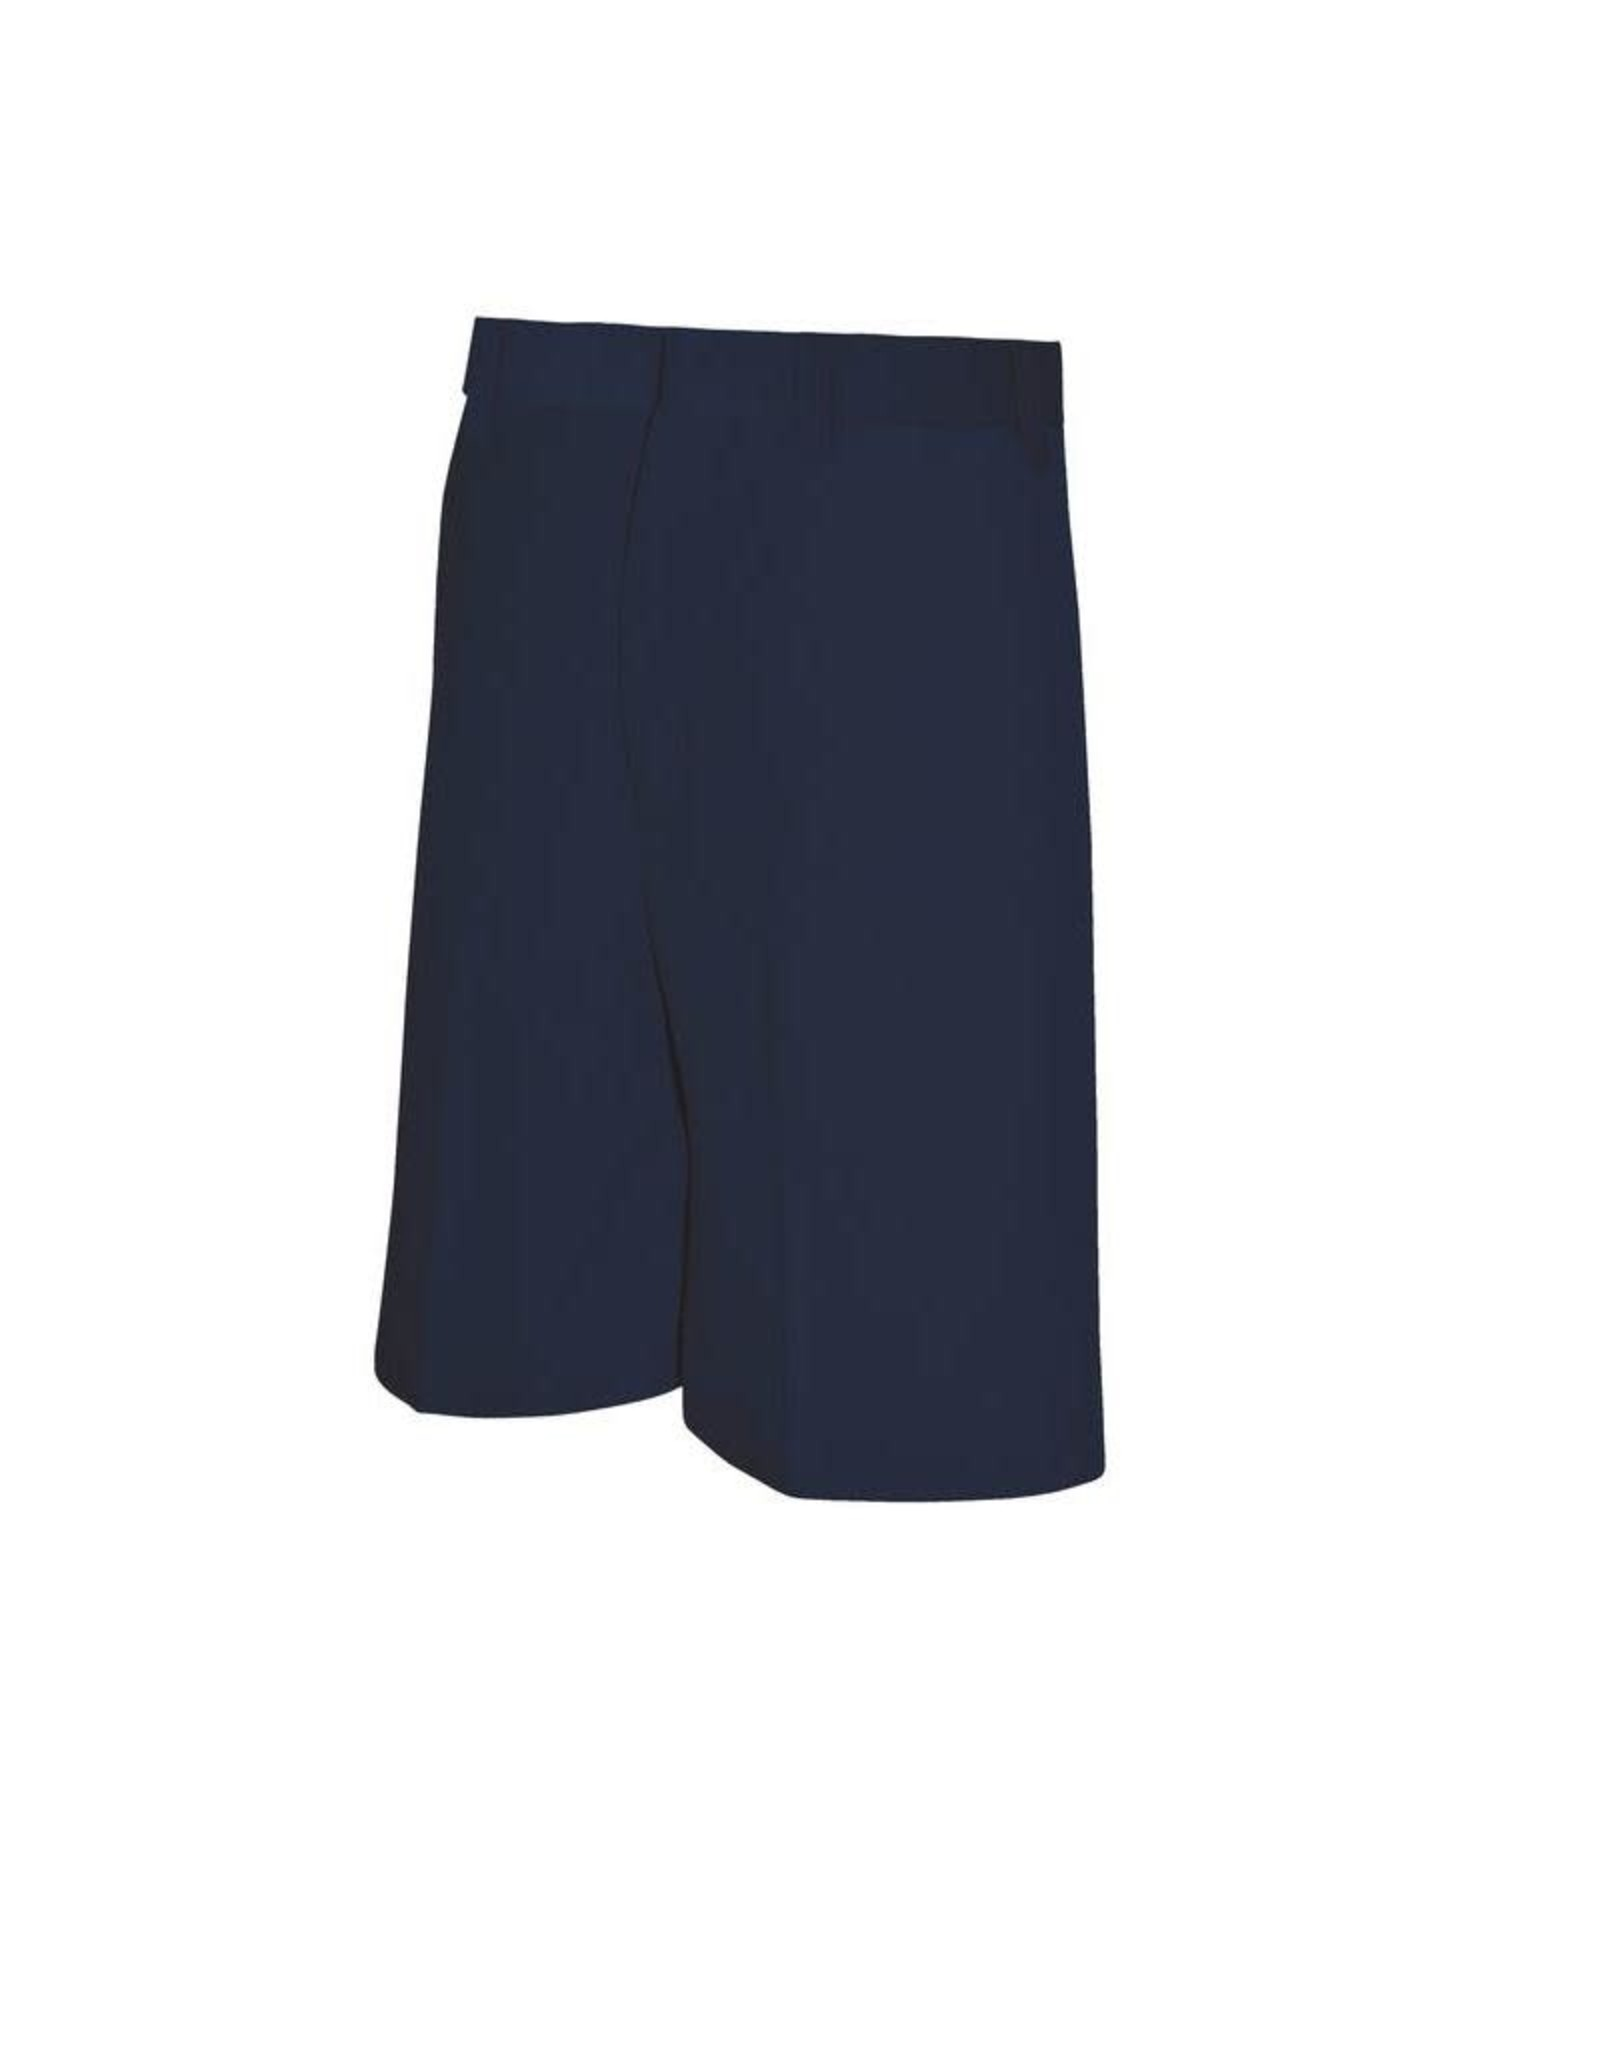 UNIFORM SALE - Boys Shorts, Old Style, Navy, final sale